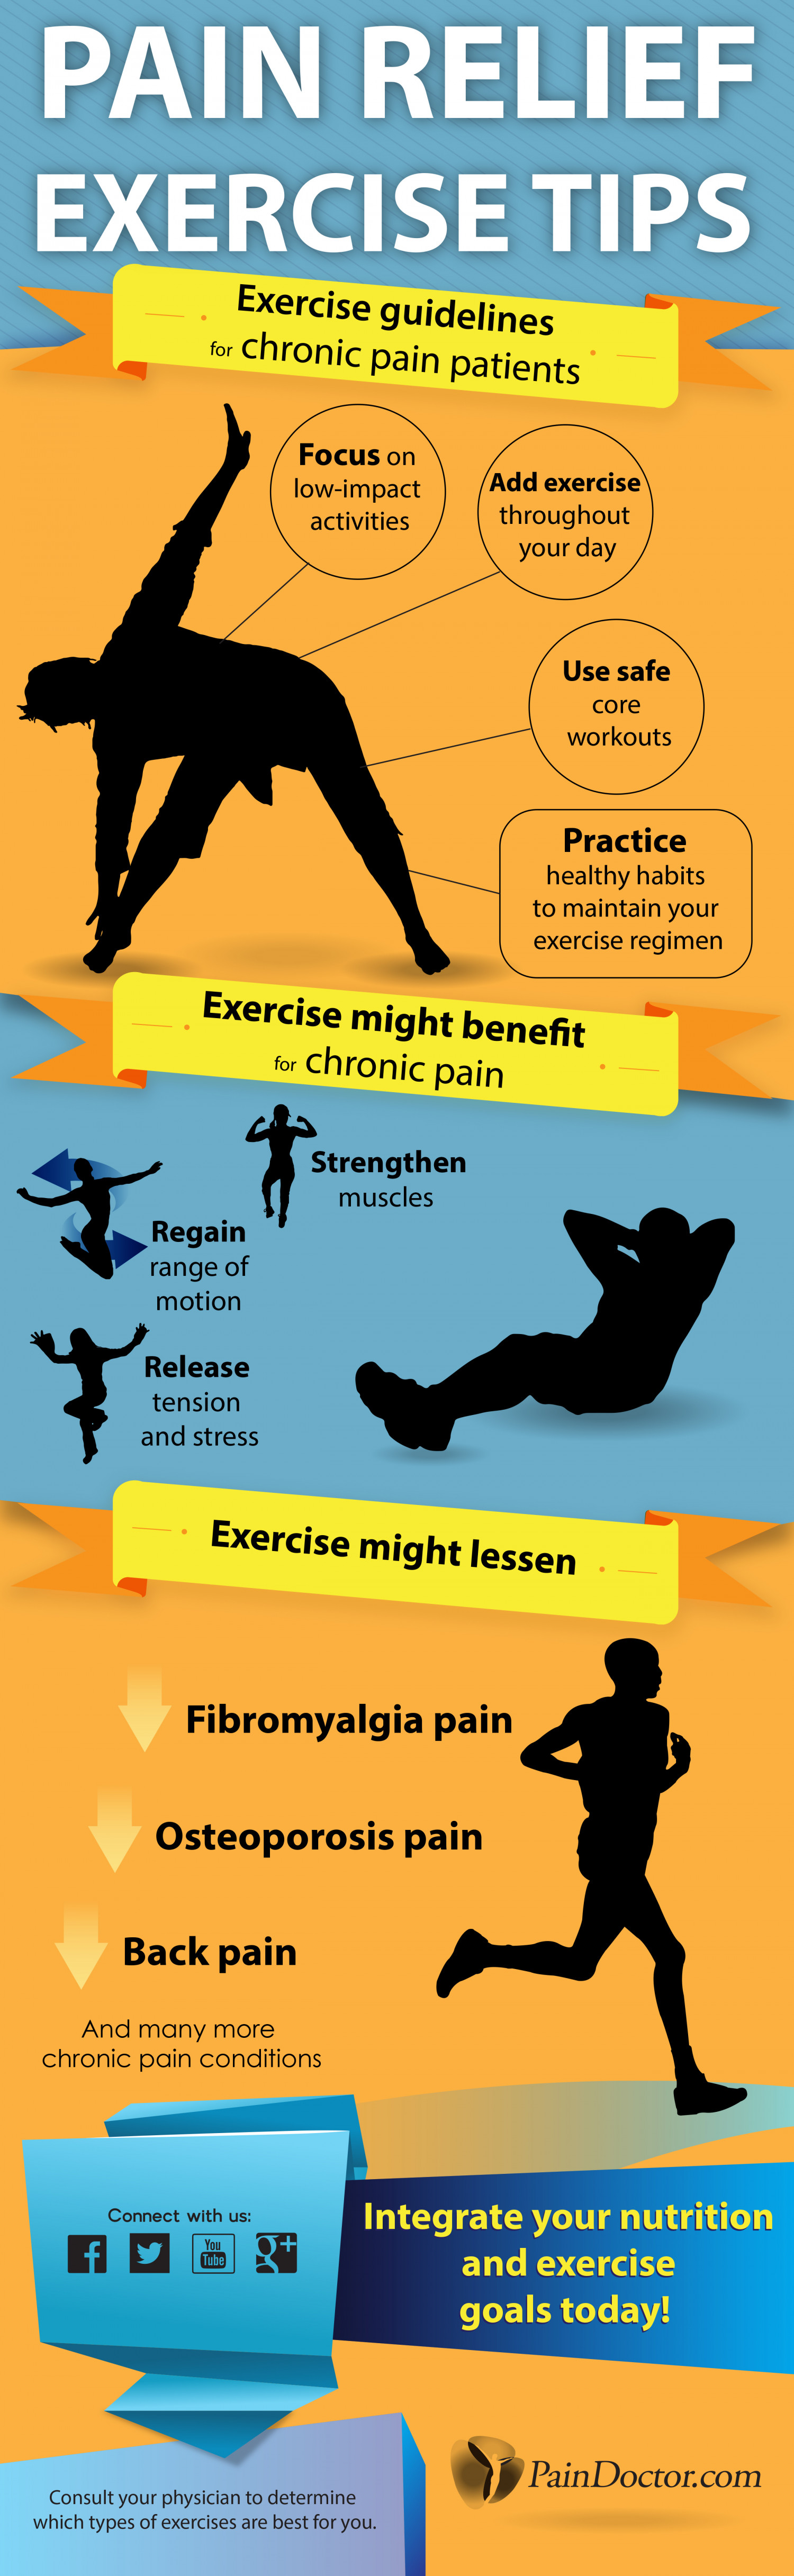 Pain Relief Exercise Tips Infographic